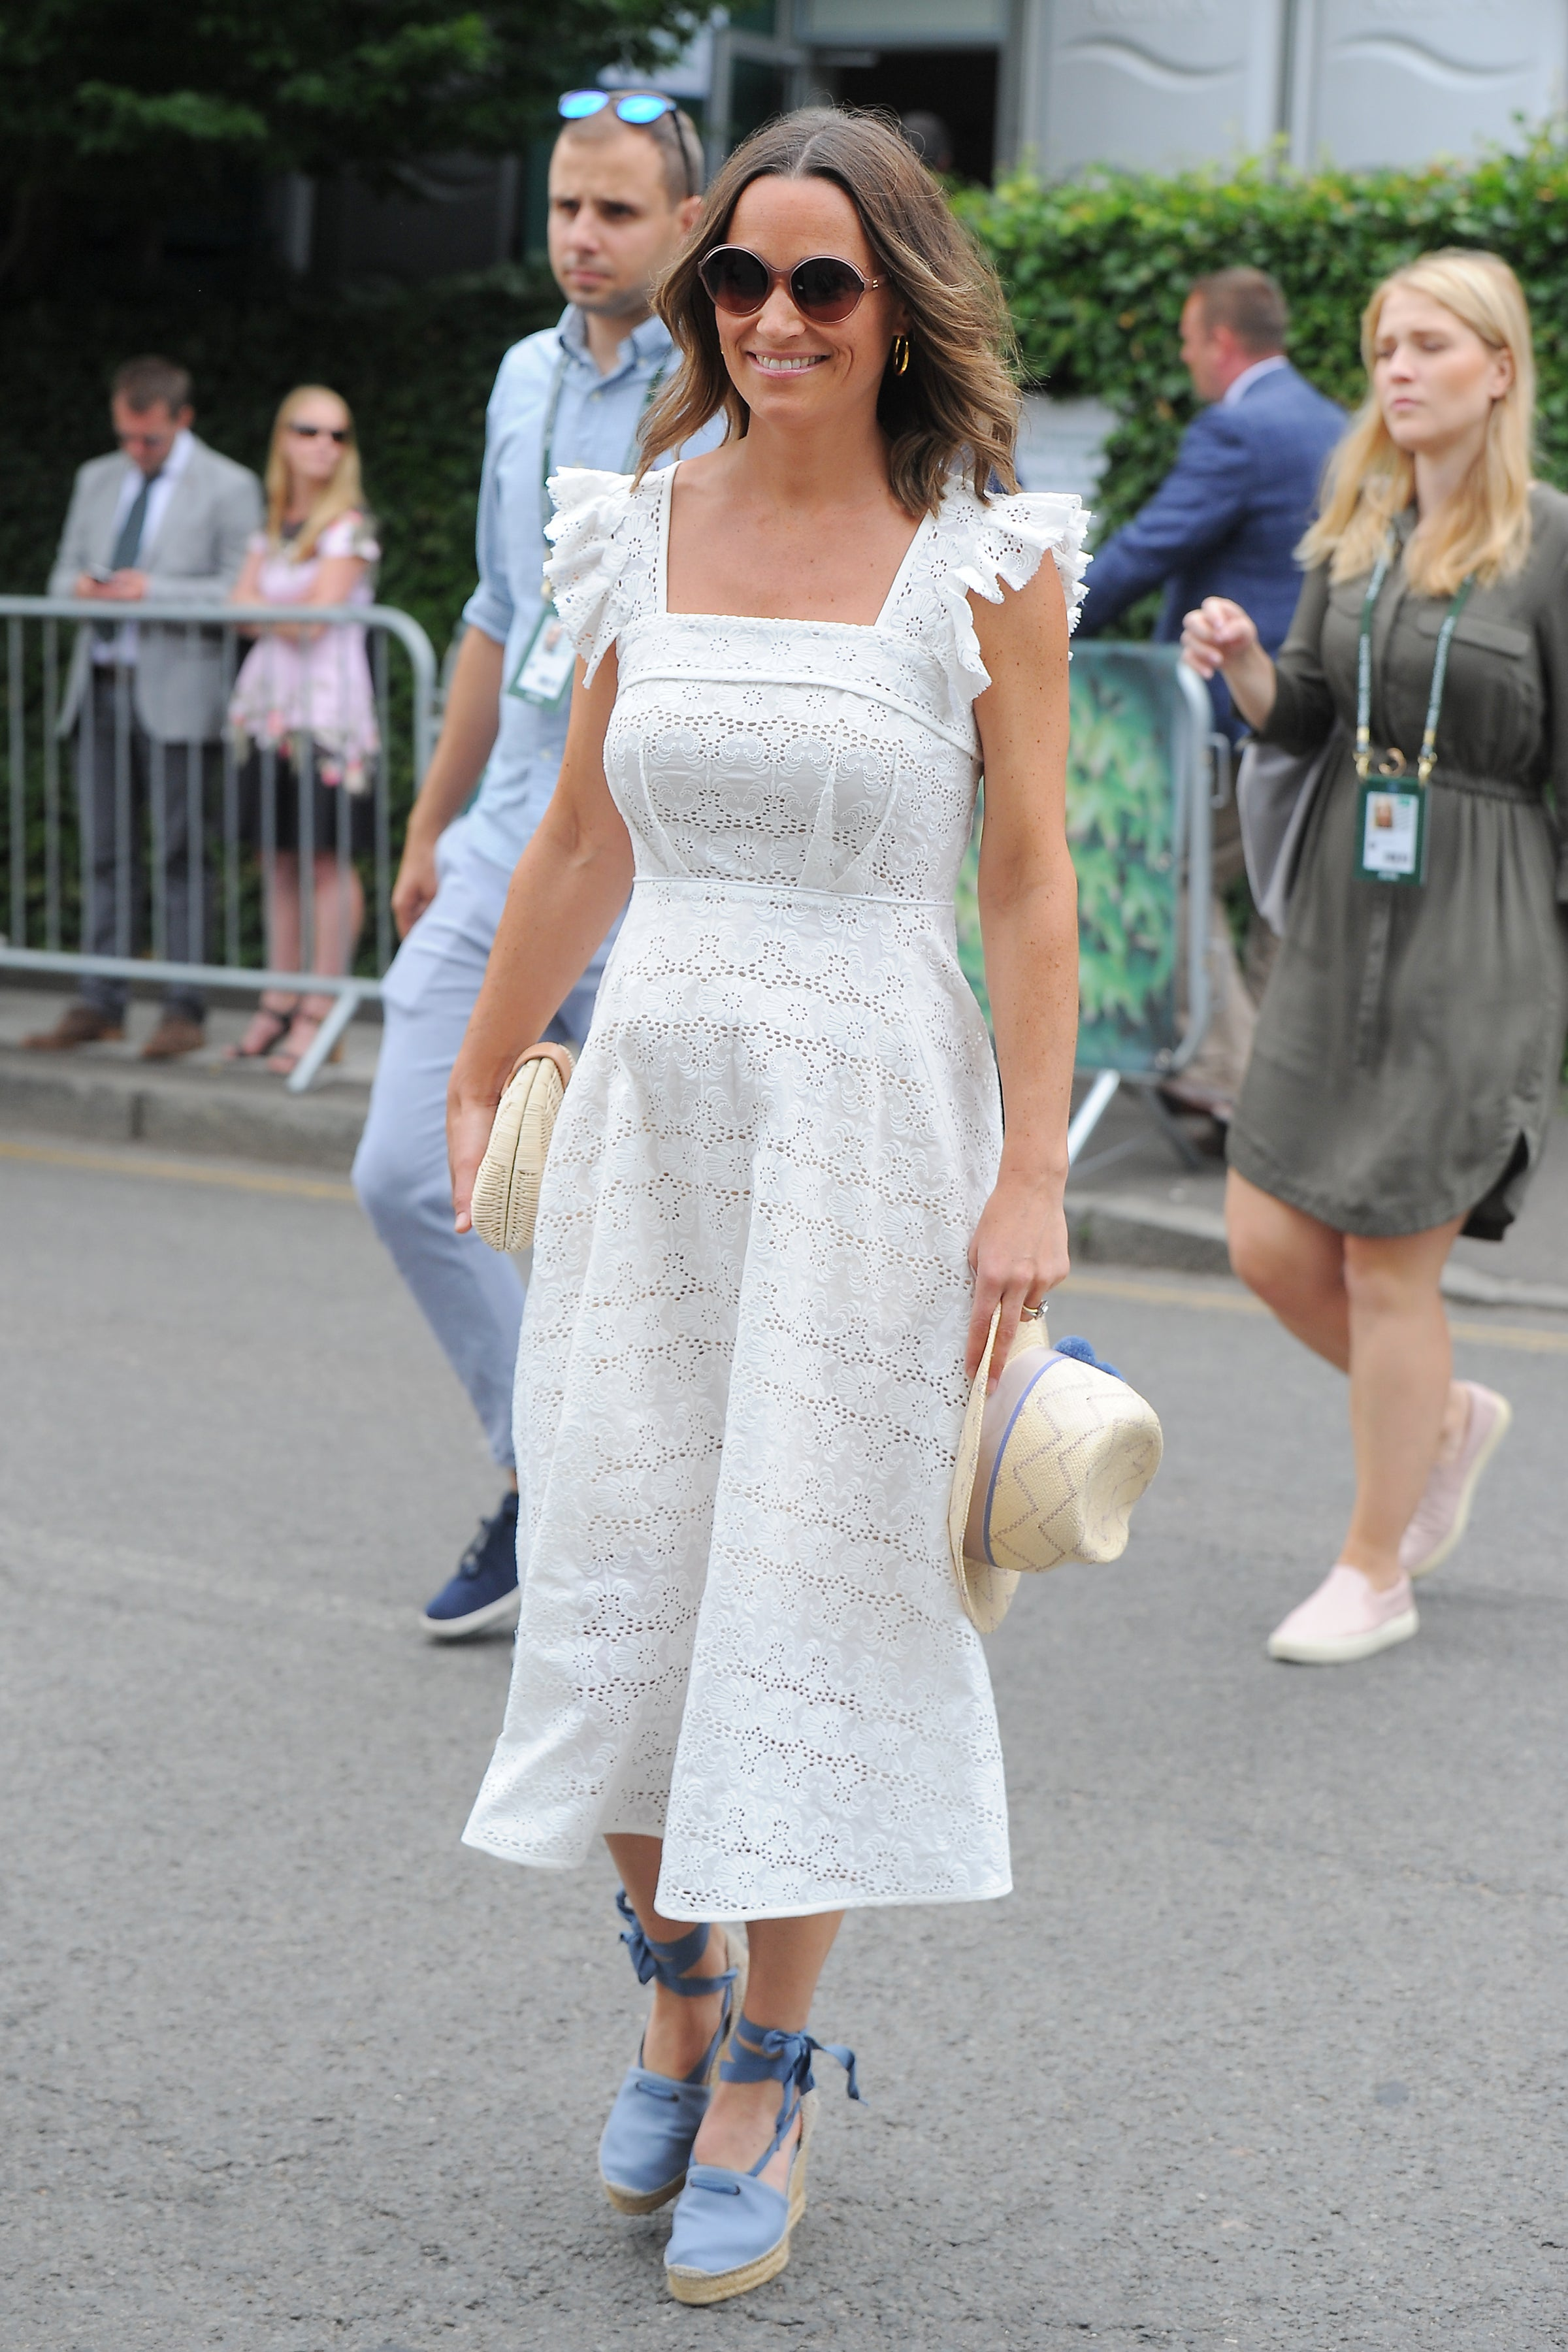 451e747c3 Pippa Middleton's Summer Maternity Style Is Totally Worth Copying ...